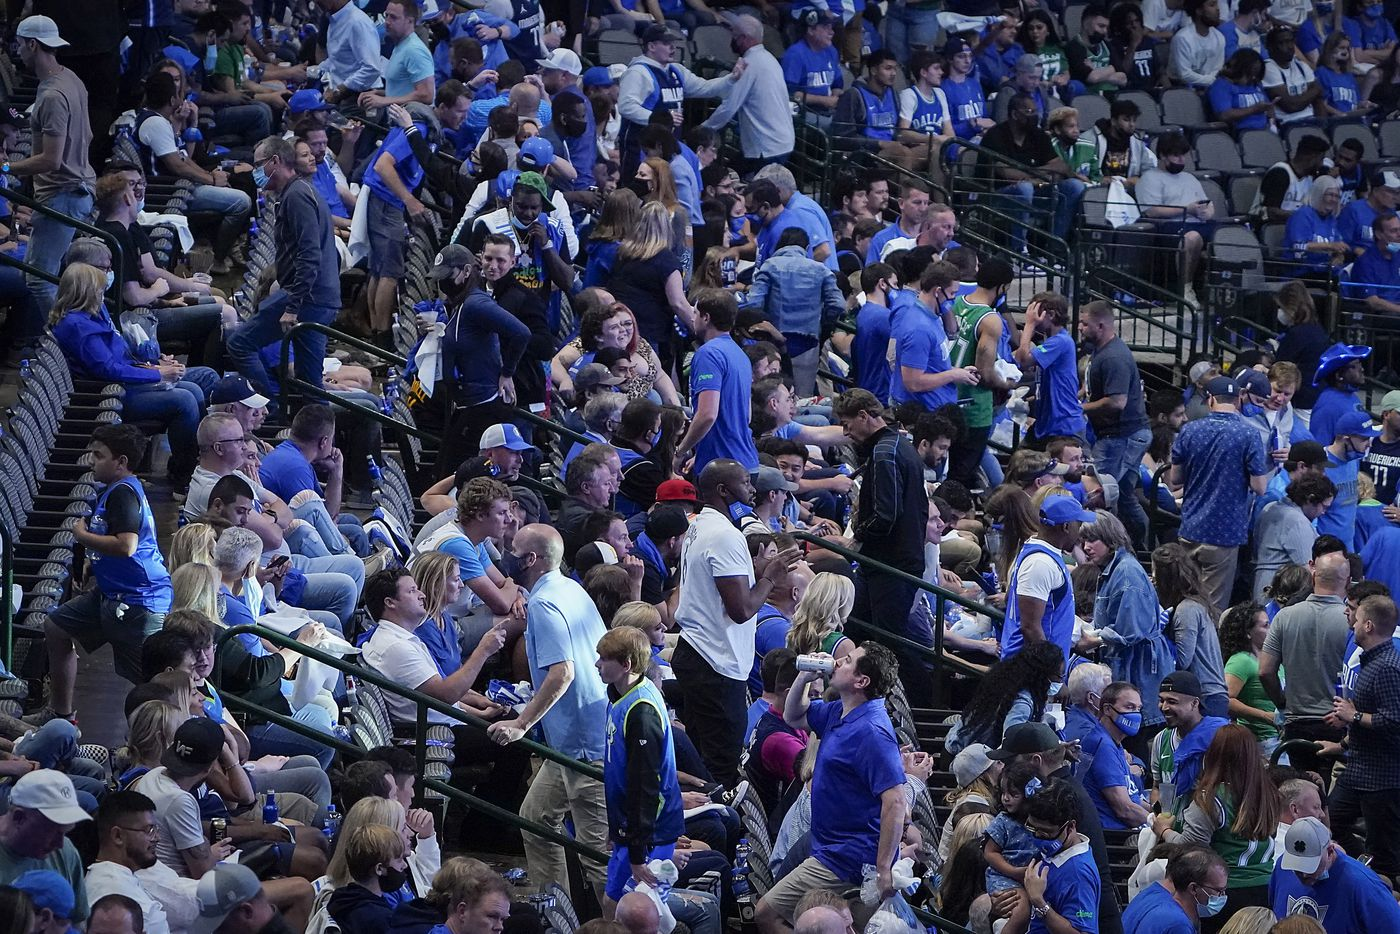 Dallas Mavericks fans head for the exits with just over four minutes left during the fourth quarter of an NBA playoff basketball game LA Clippers at American Airlines Center on Sunday, May 30, 2021, in Dallas.  The Clippers won the game 106-81.